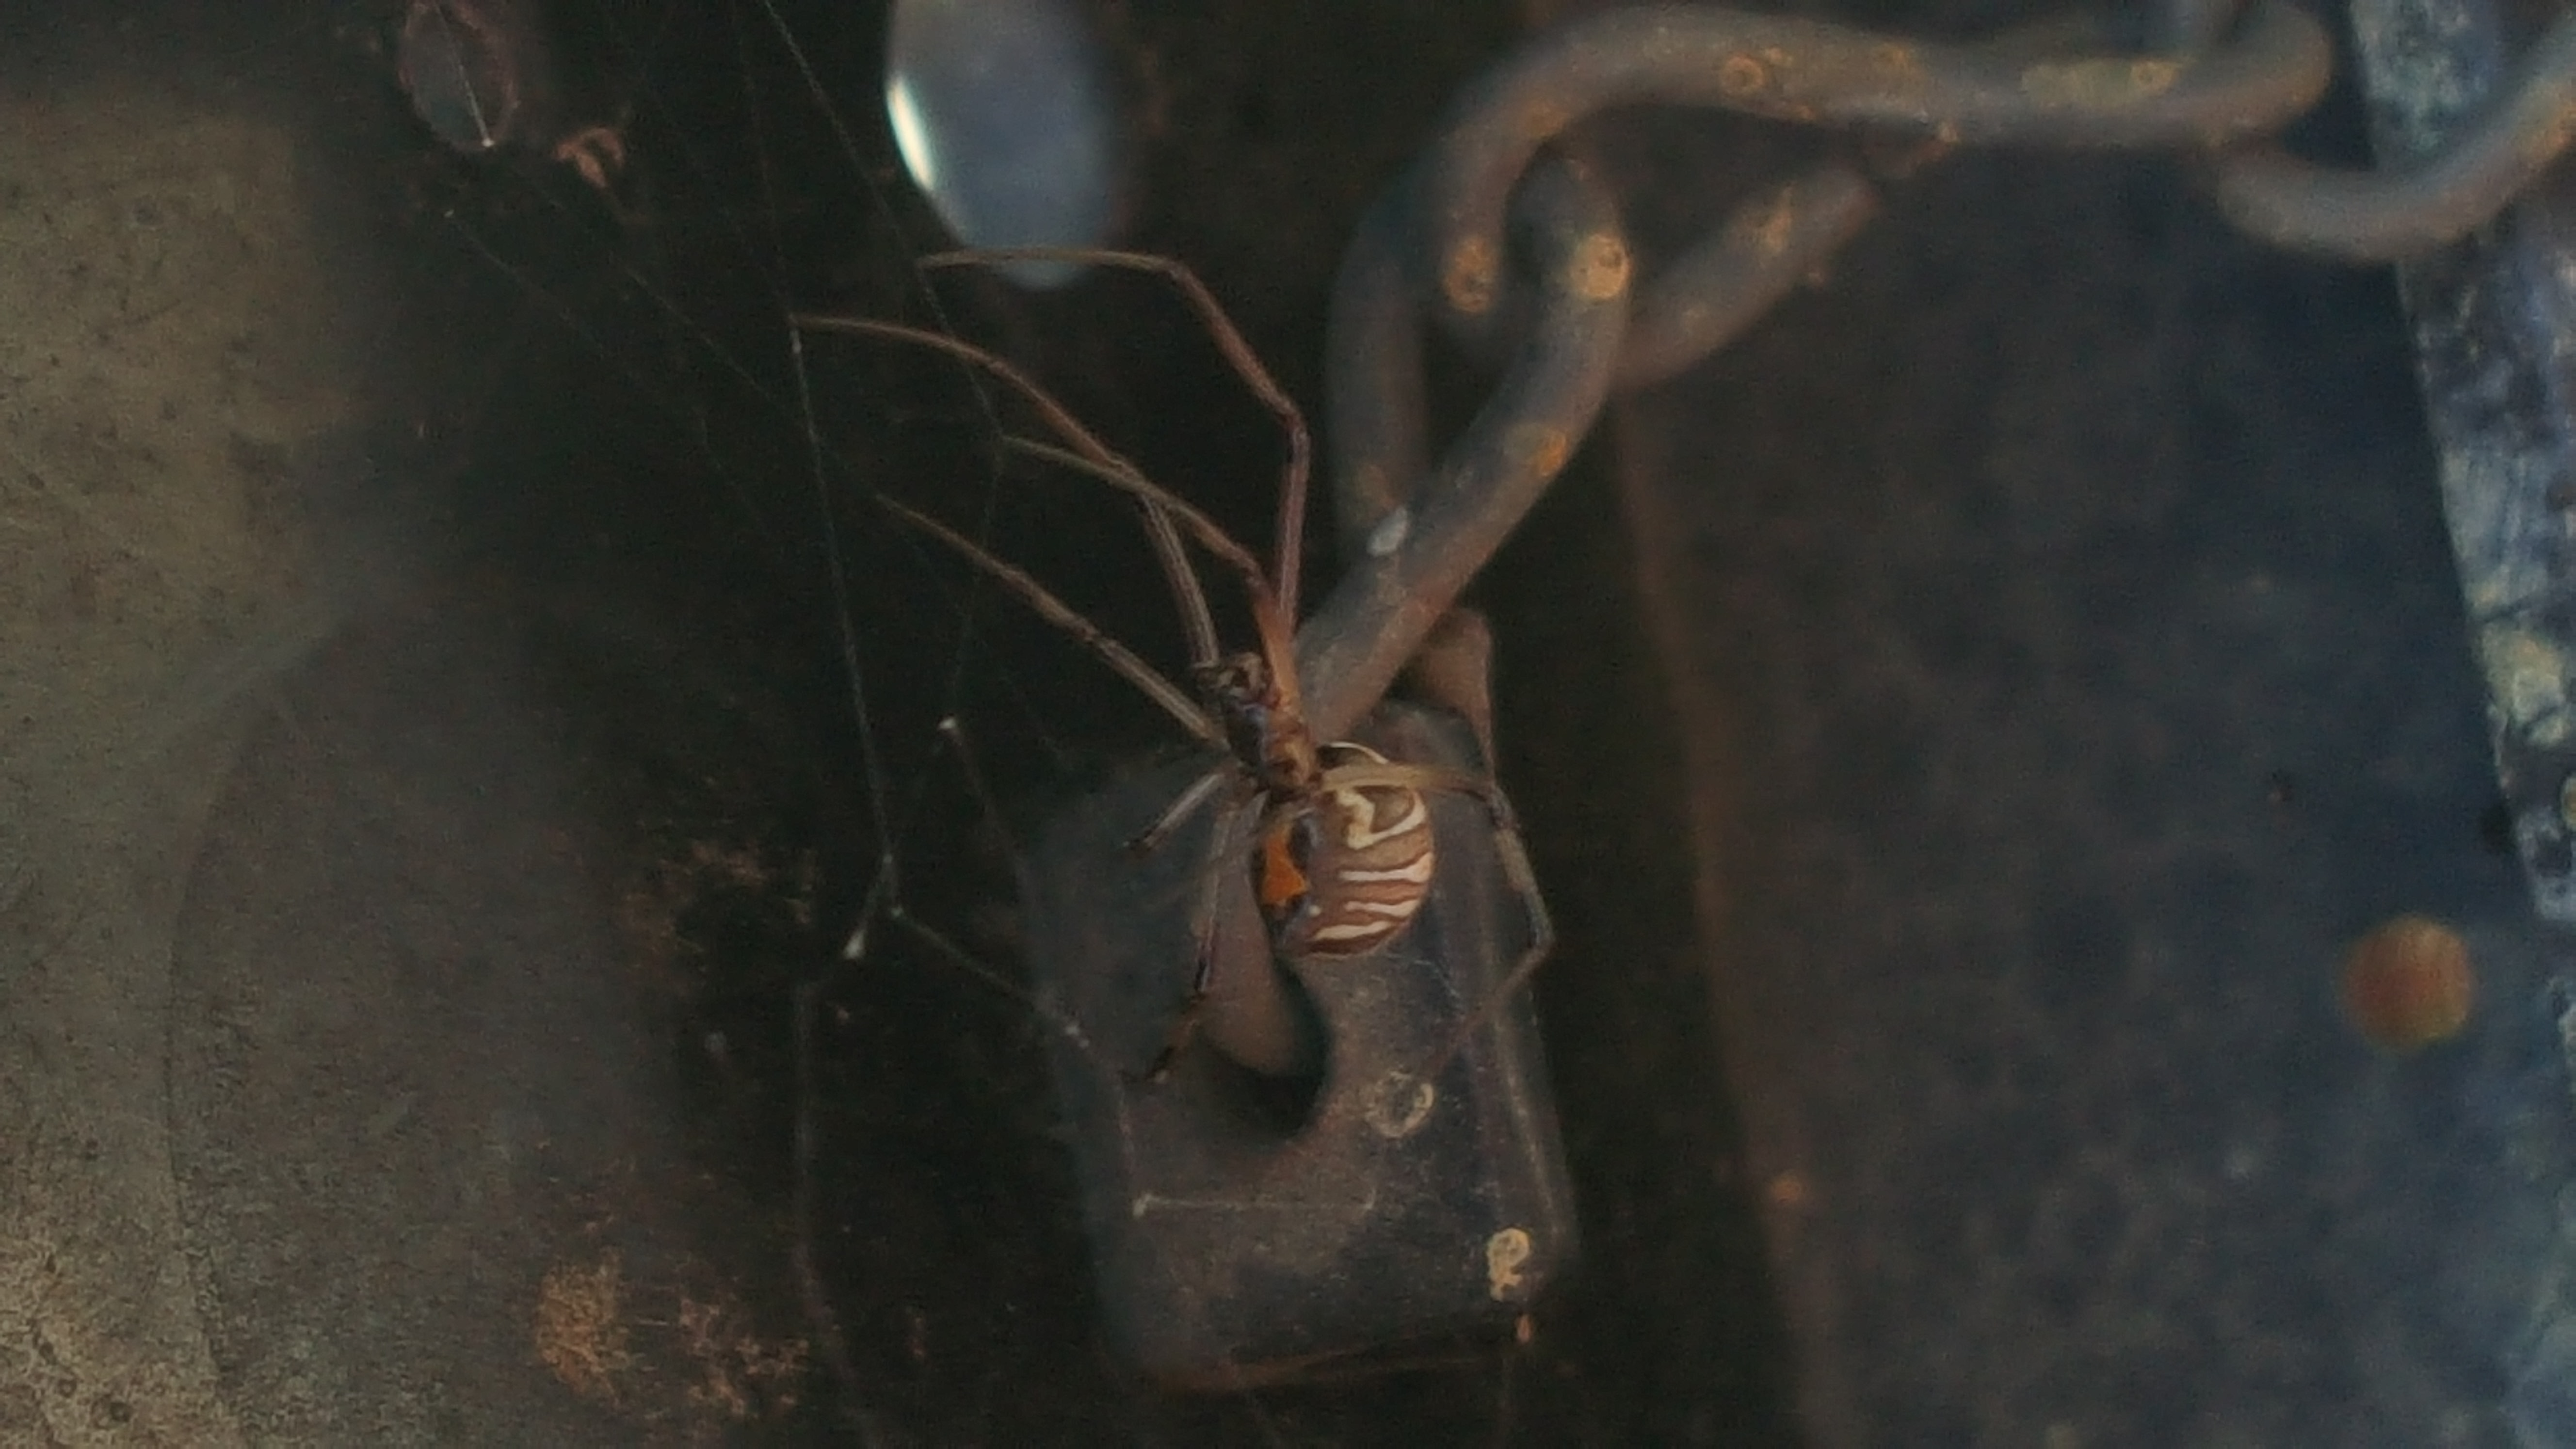 Picture of Latrodectus geometricus (Brown Widow Spider) - Female - Ventral,Webs